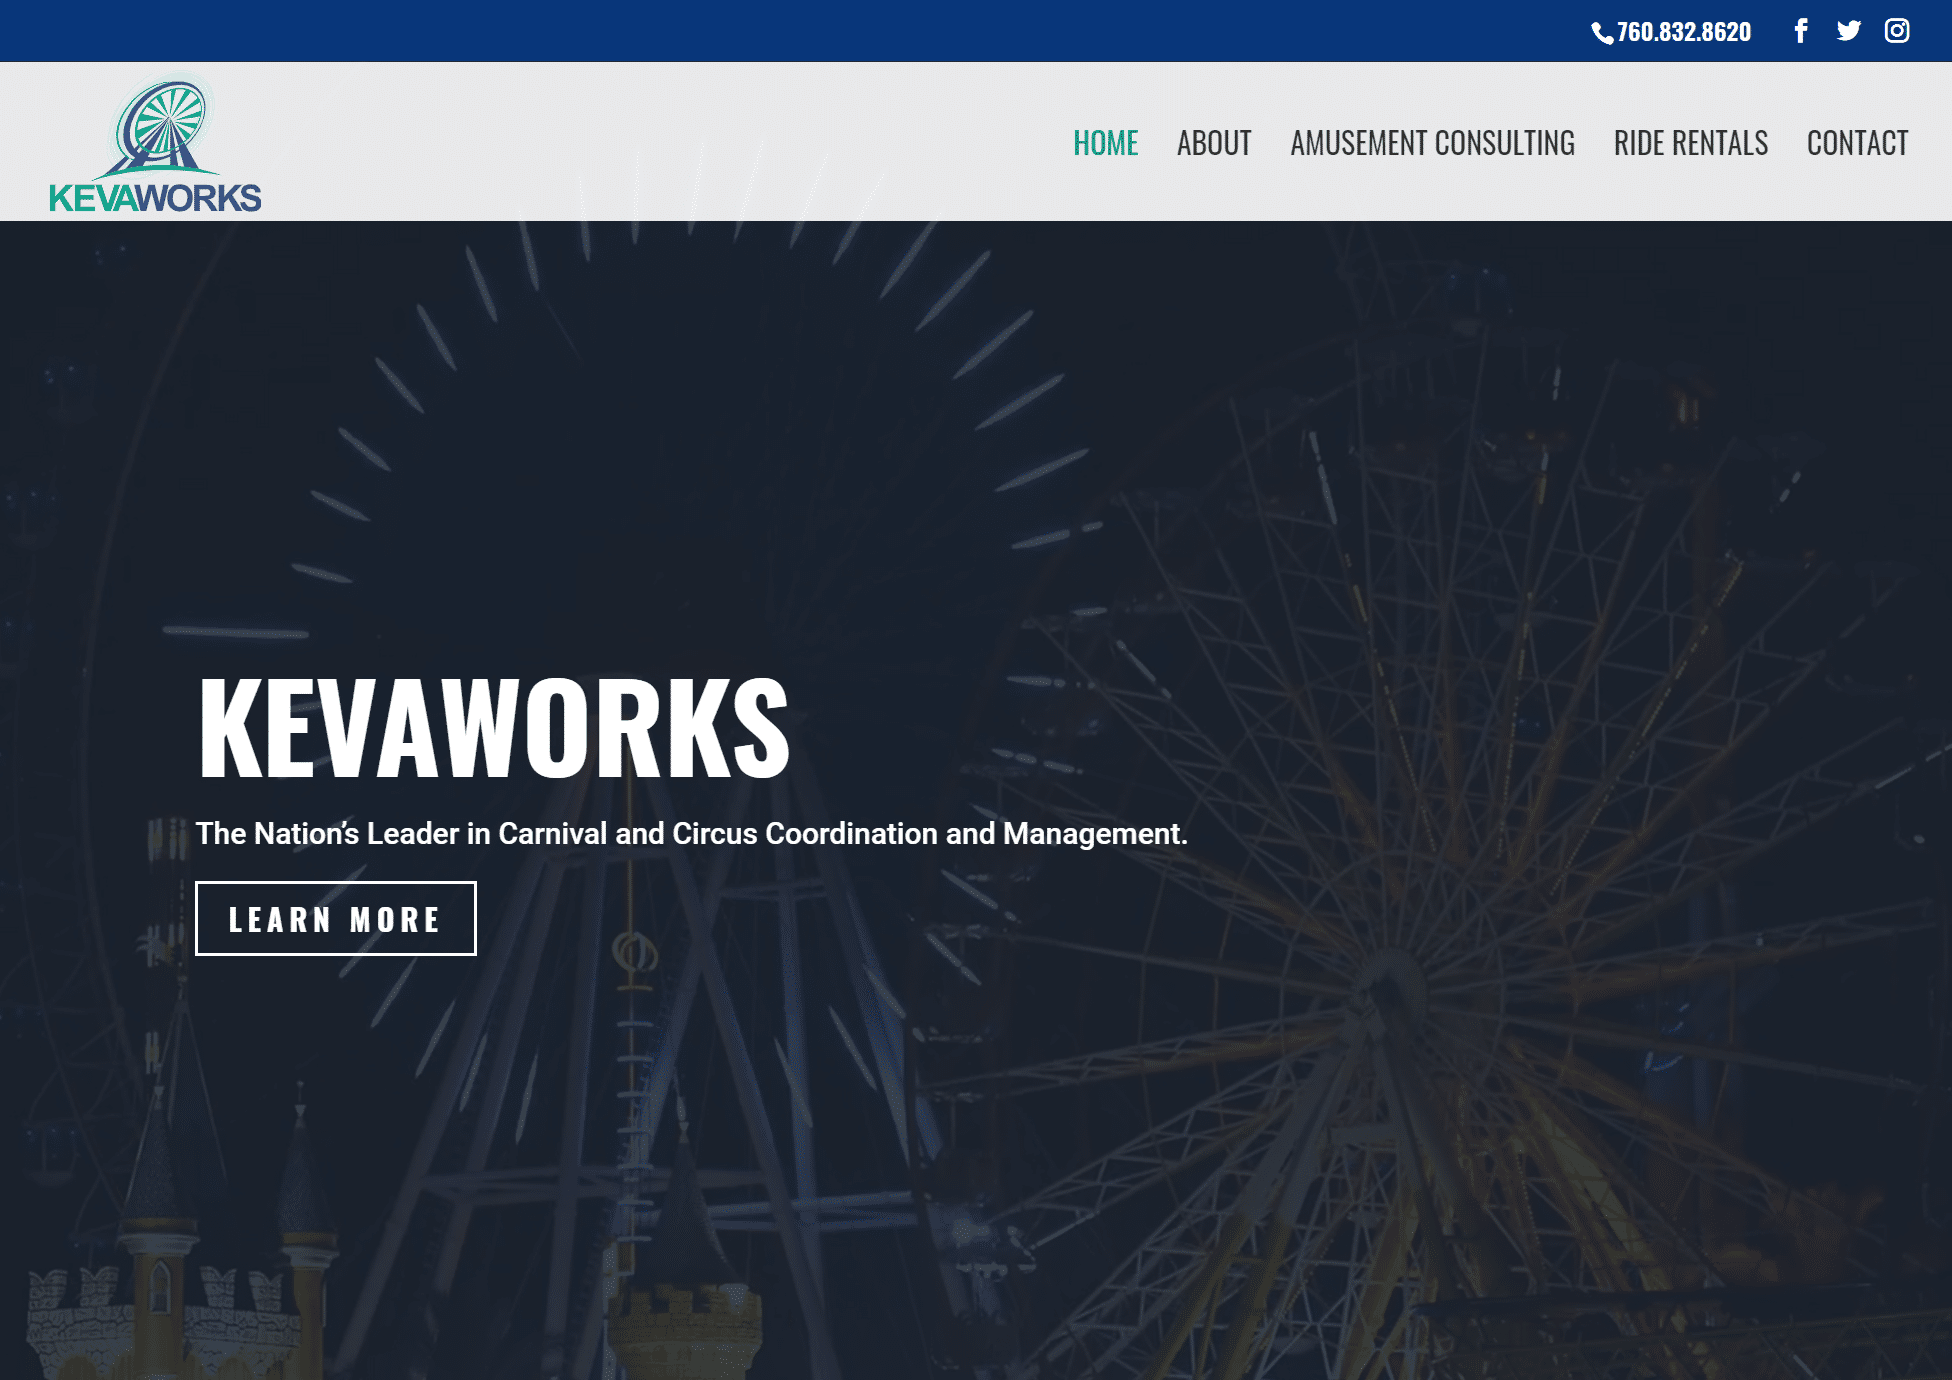 Kevaworks new website